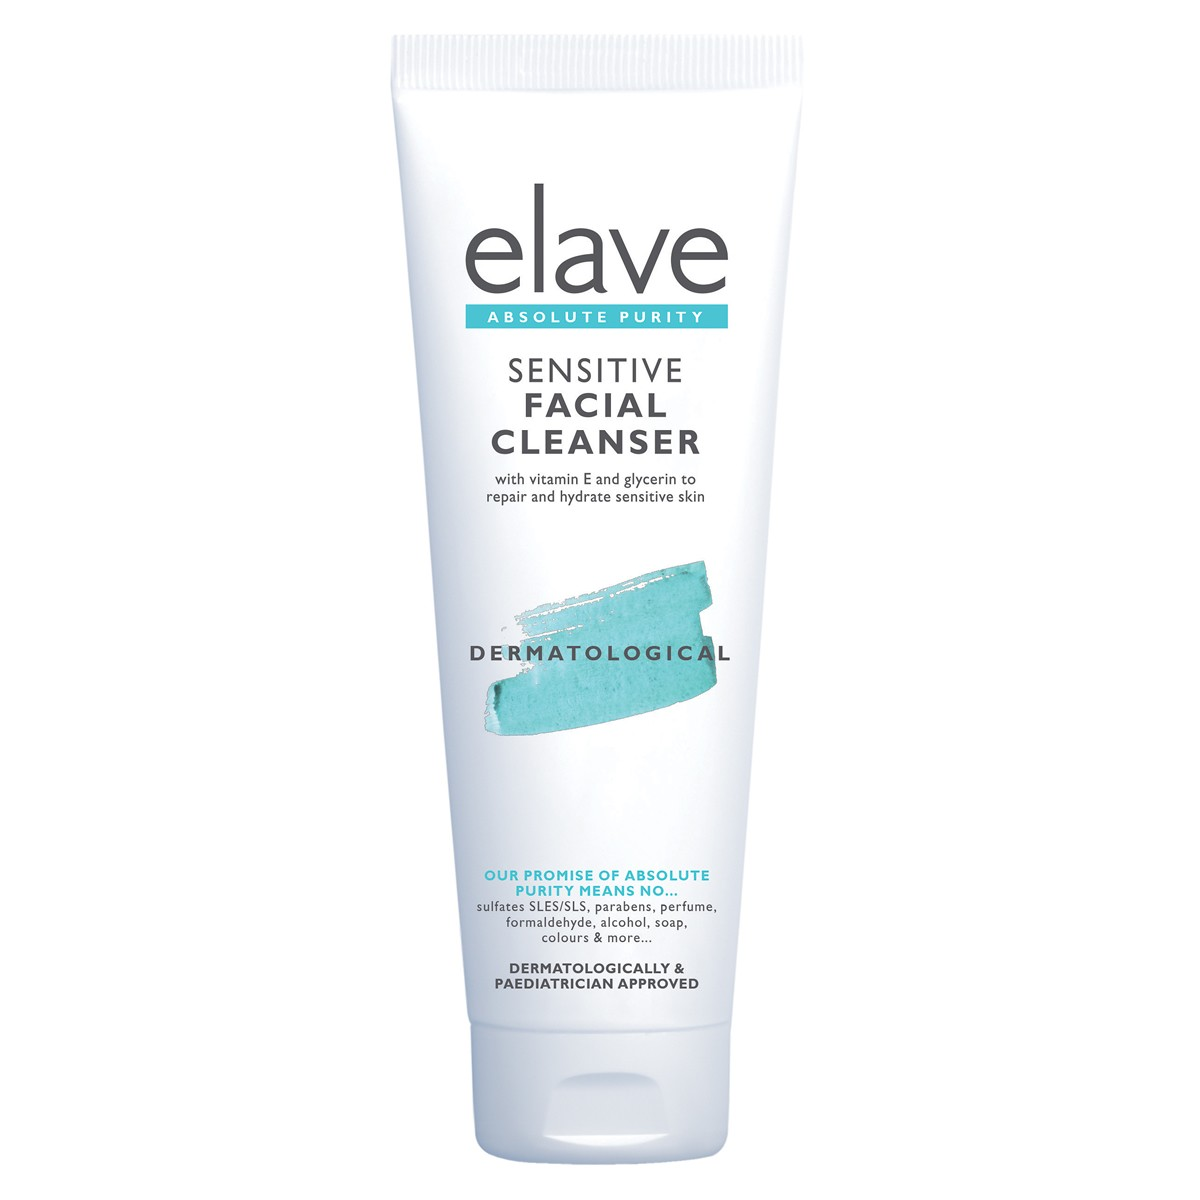 Elave Sensitive Facial Cleanser